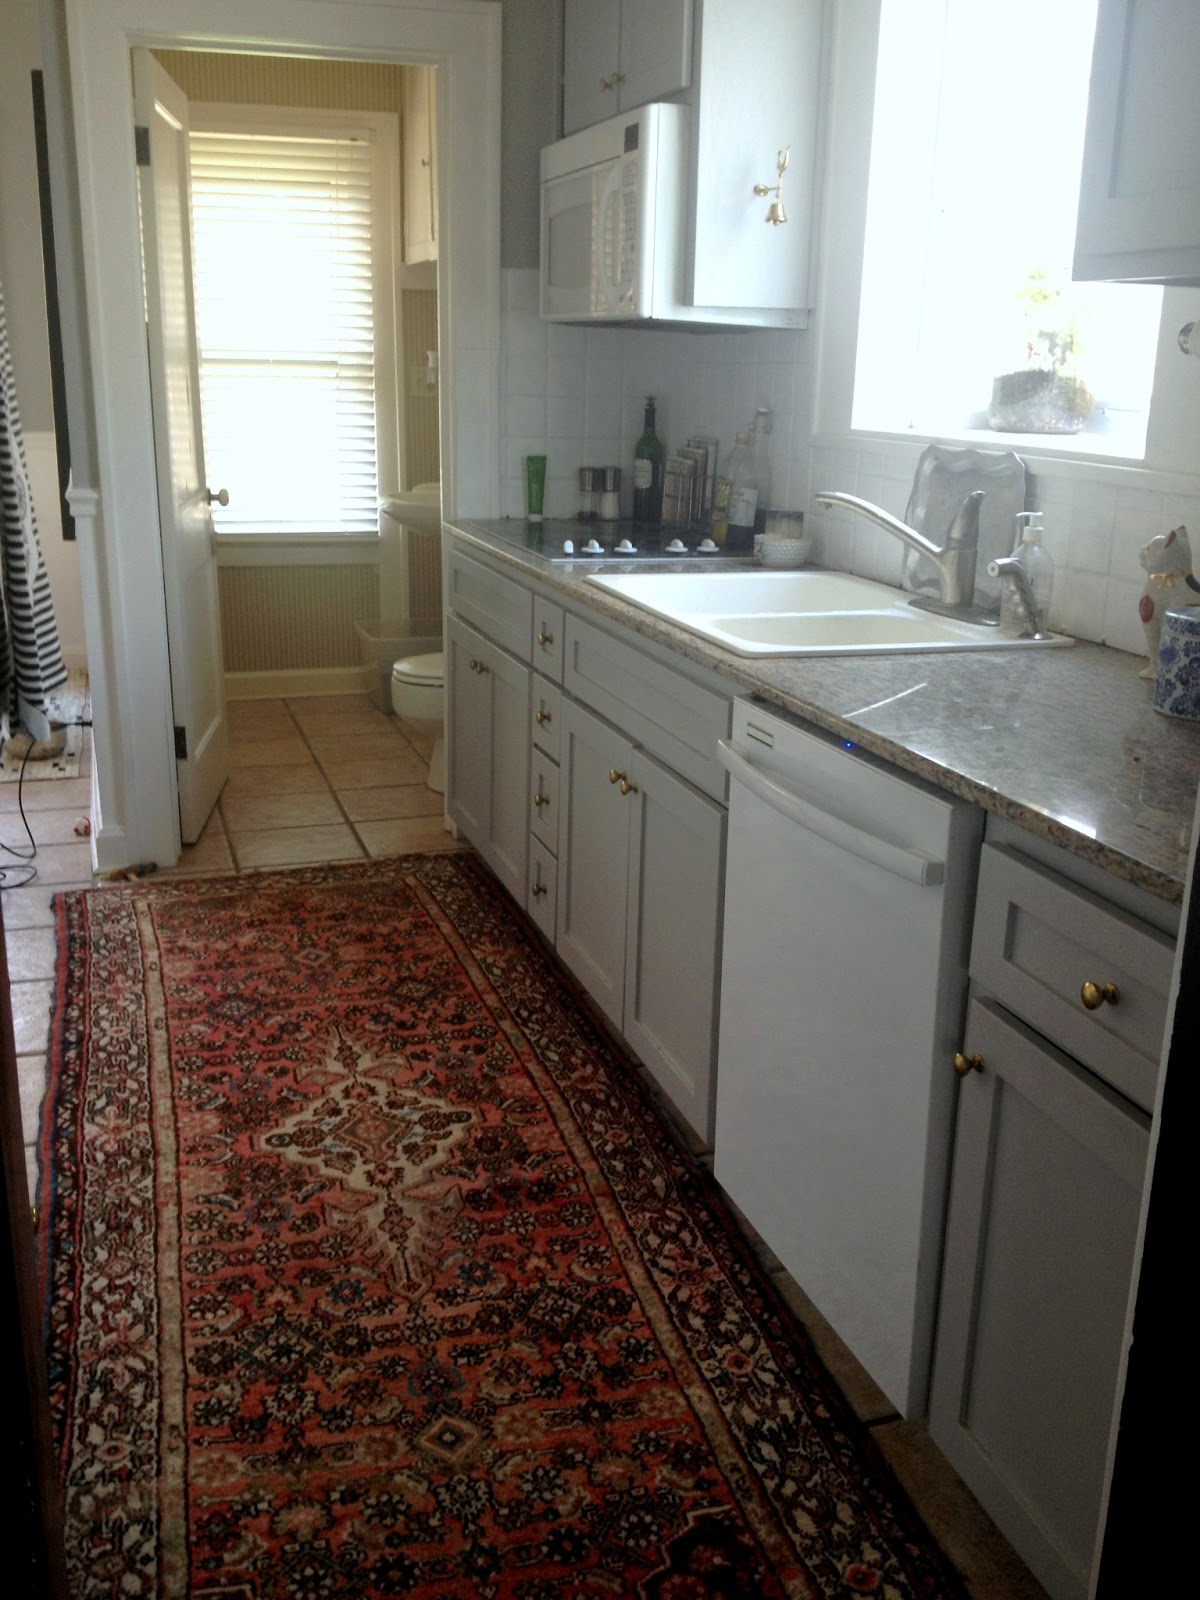 10 Photos To Kitchen Rug Runners